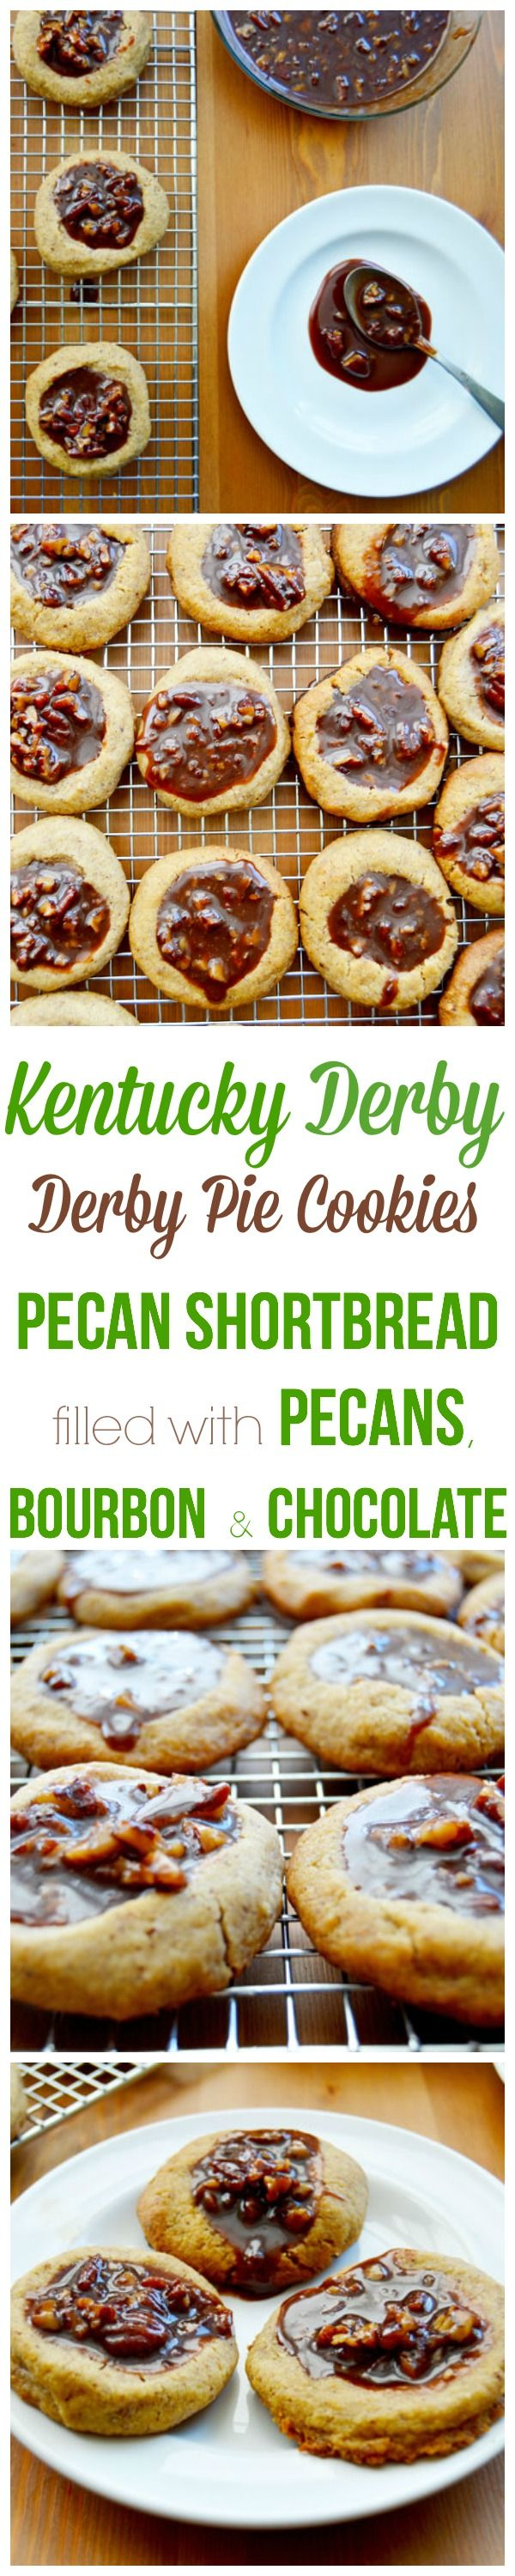 Kentucky Derby Cookies - inspired by Derby Pie or Chocolate Nut Pie. These cookies have a pecan short bread base that's filled with bourbon, chocolate, and more pecans.  Perfect for Kentucky Derby parties but really good any time of the year!